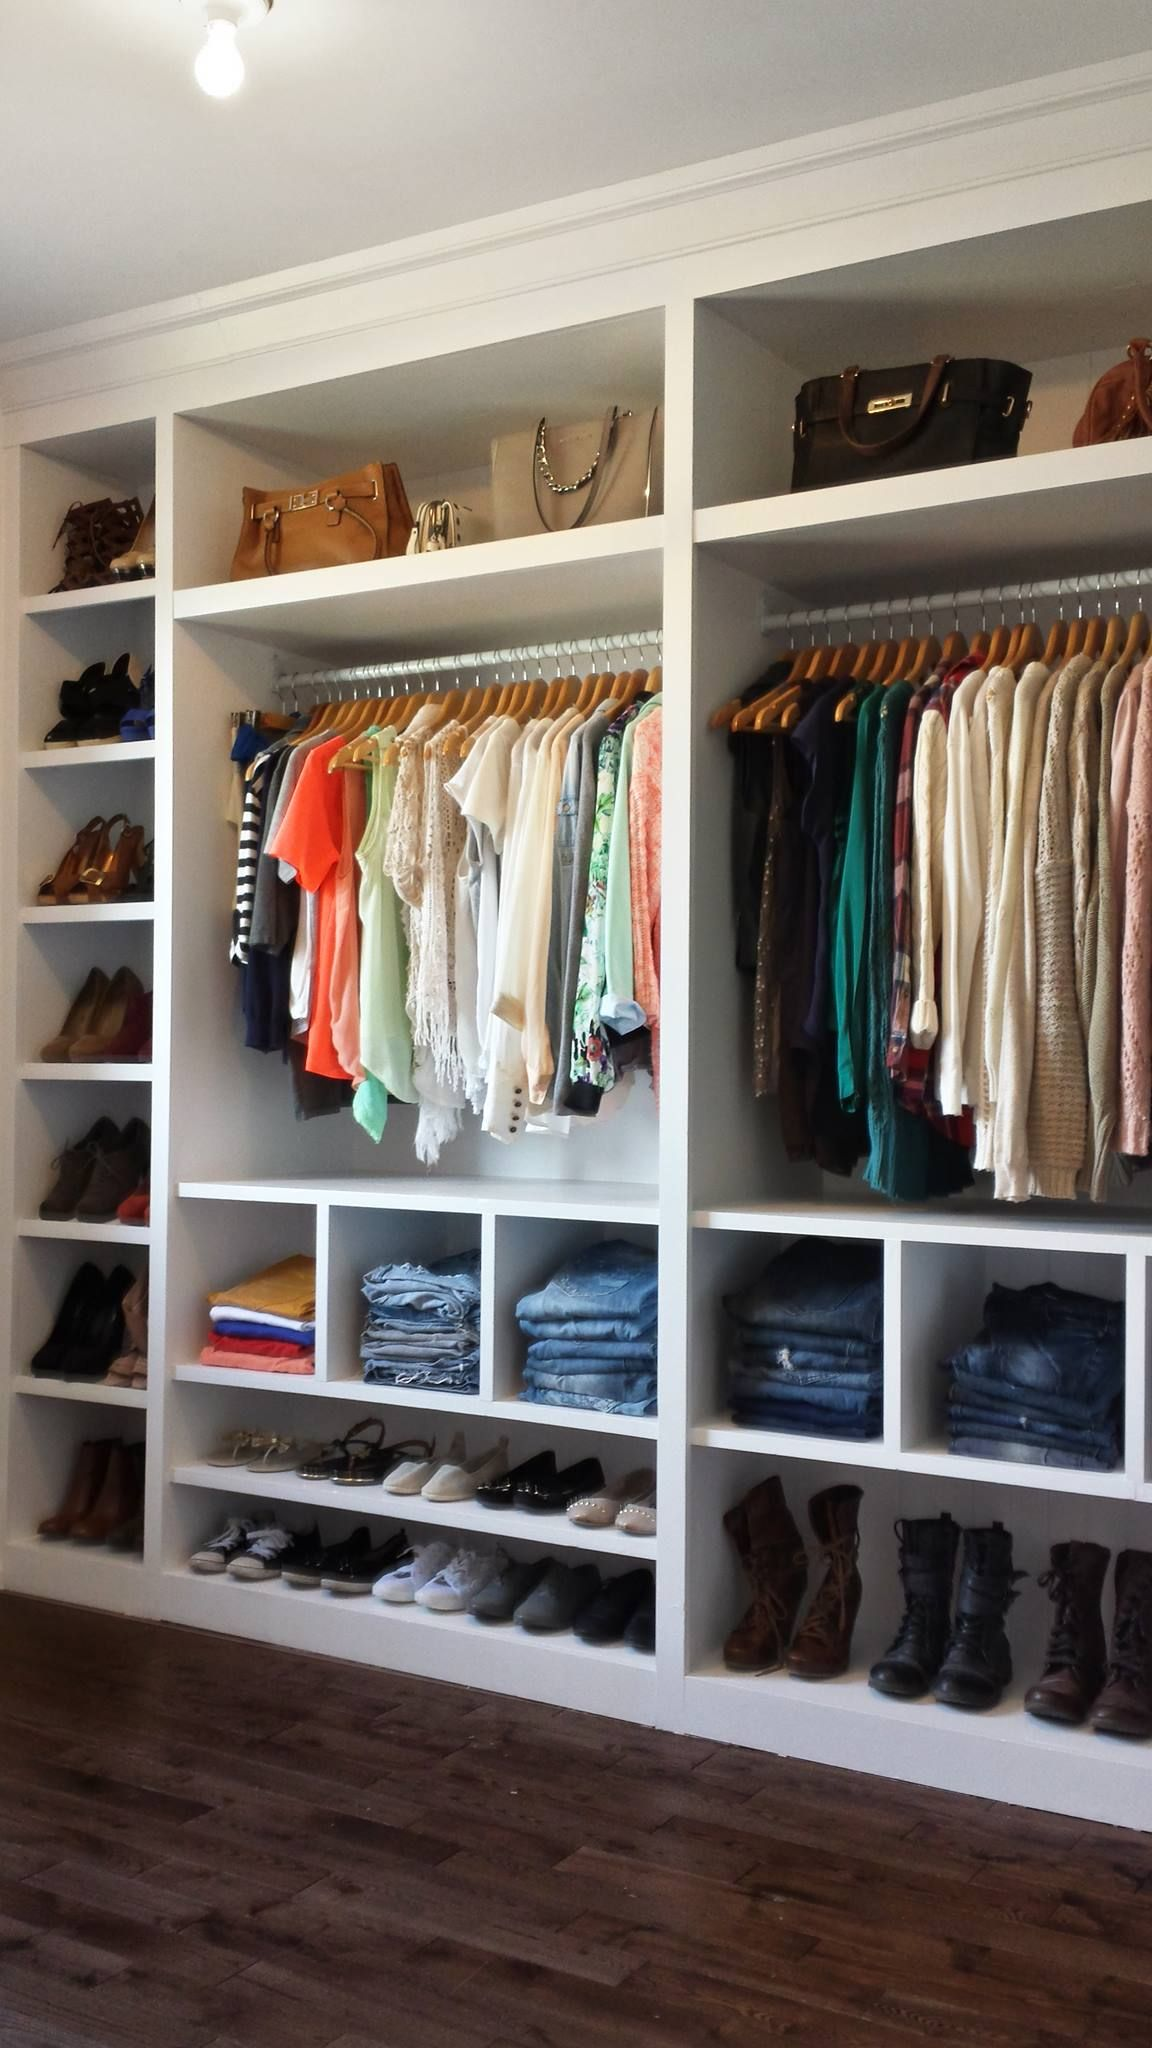 In LOVE with my new closet!!! :) Thanks to my amazing boyfriend ...